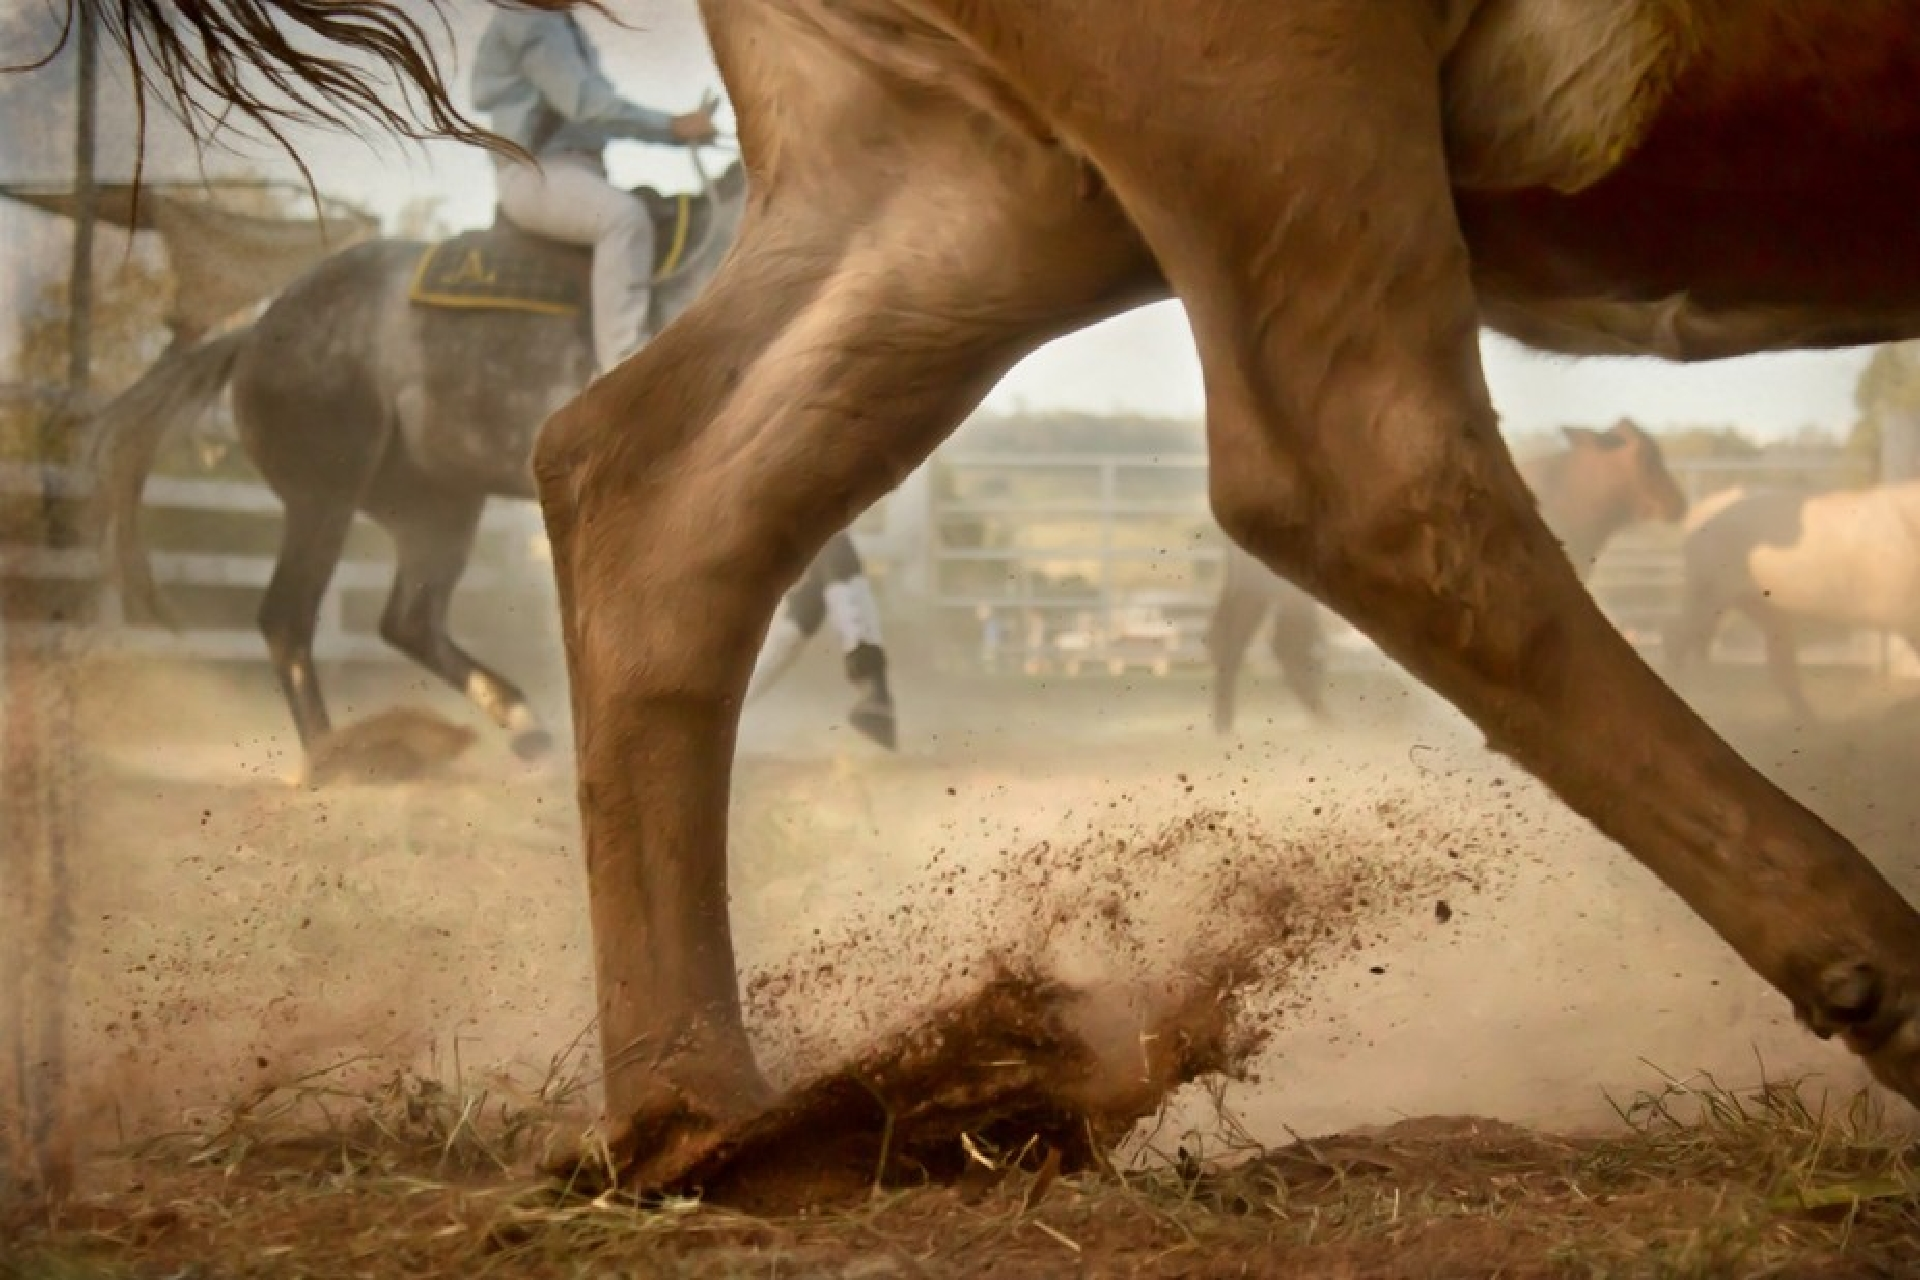 Injuries to horses